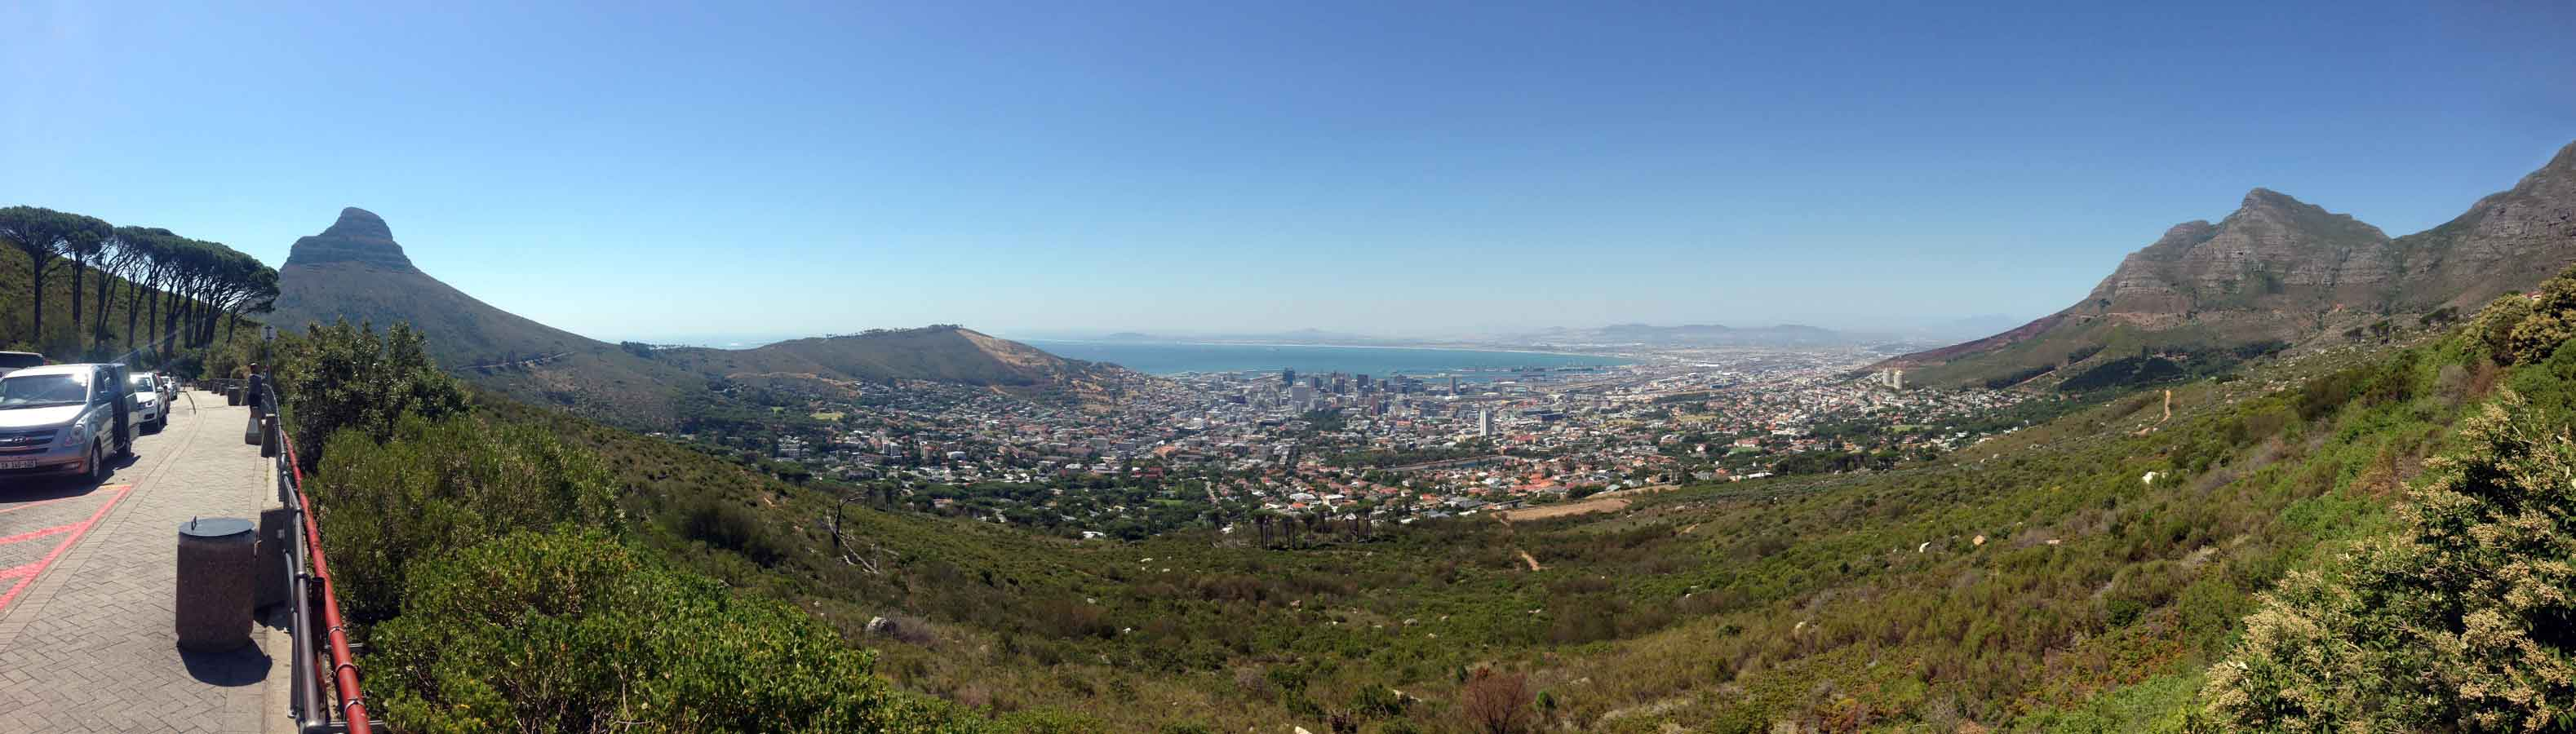 Panorama of Cape Town from Table Mountain